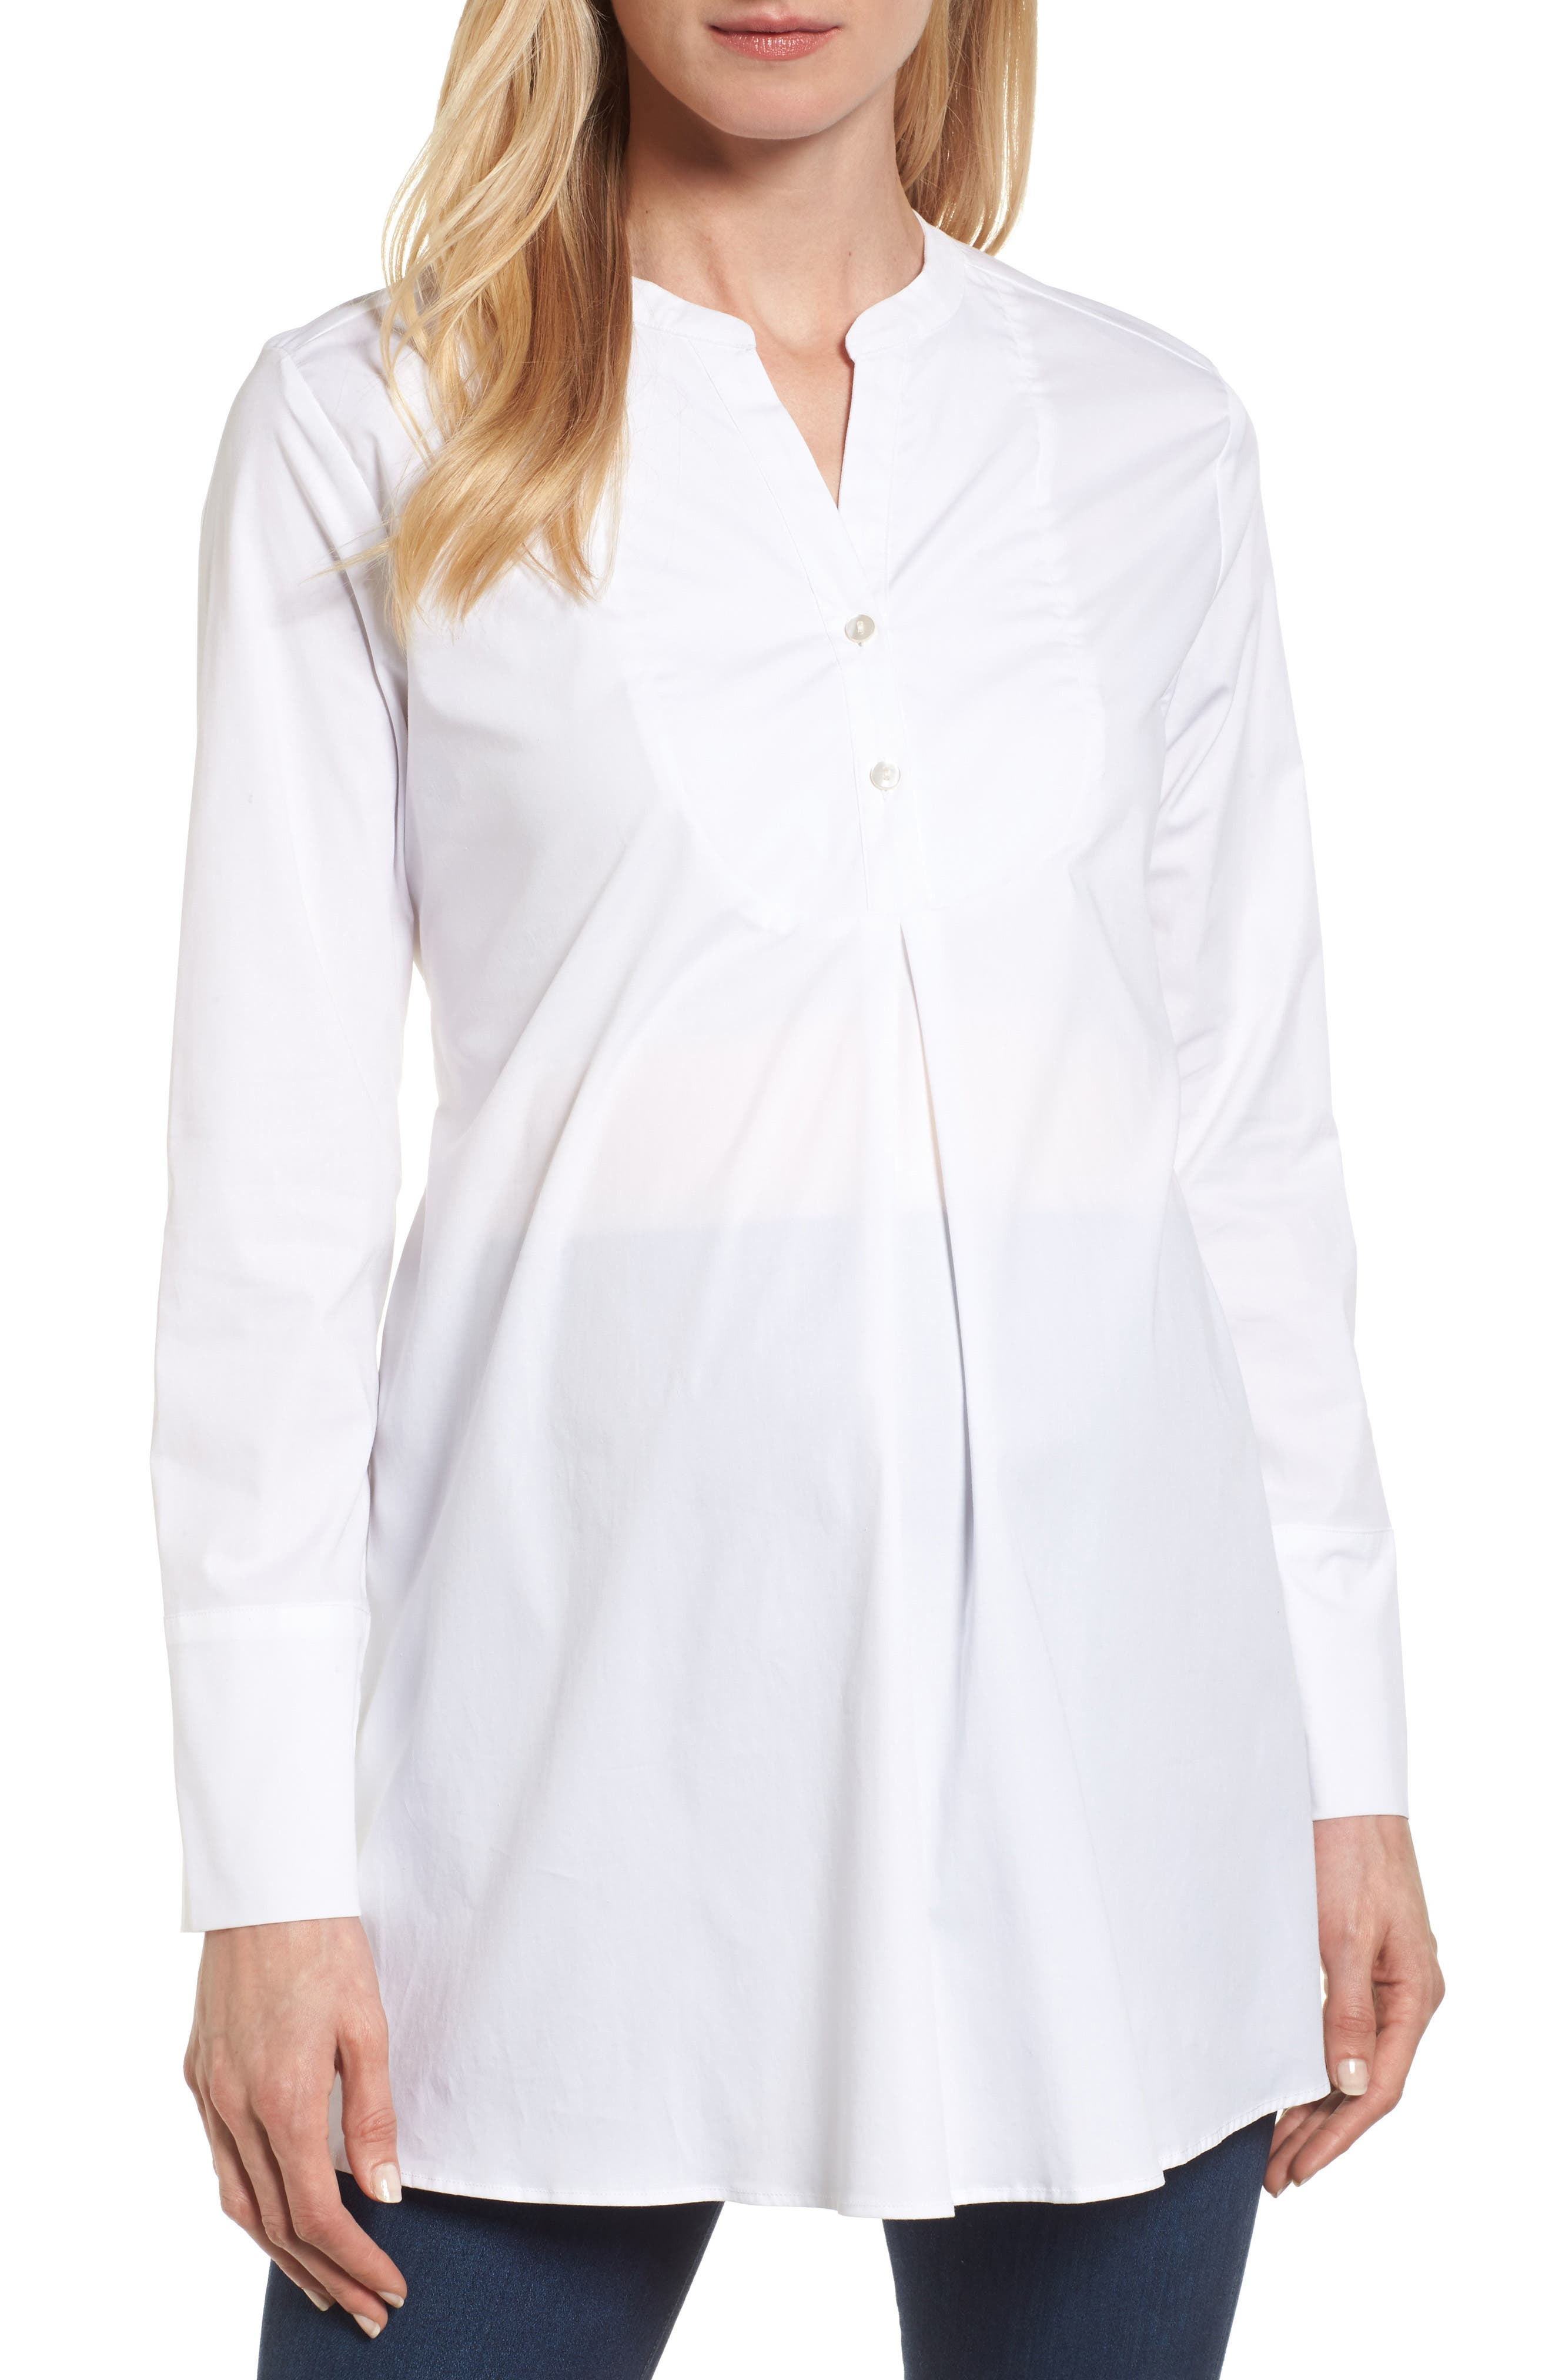 Granville Tie Front Maternity Top,                             Main thumbnail 1, color,                             PURE WHITE